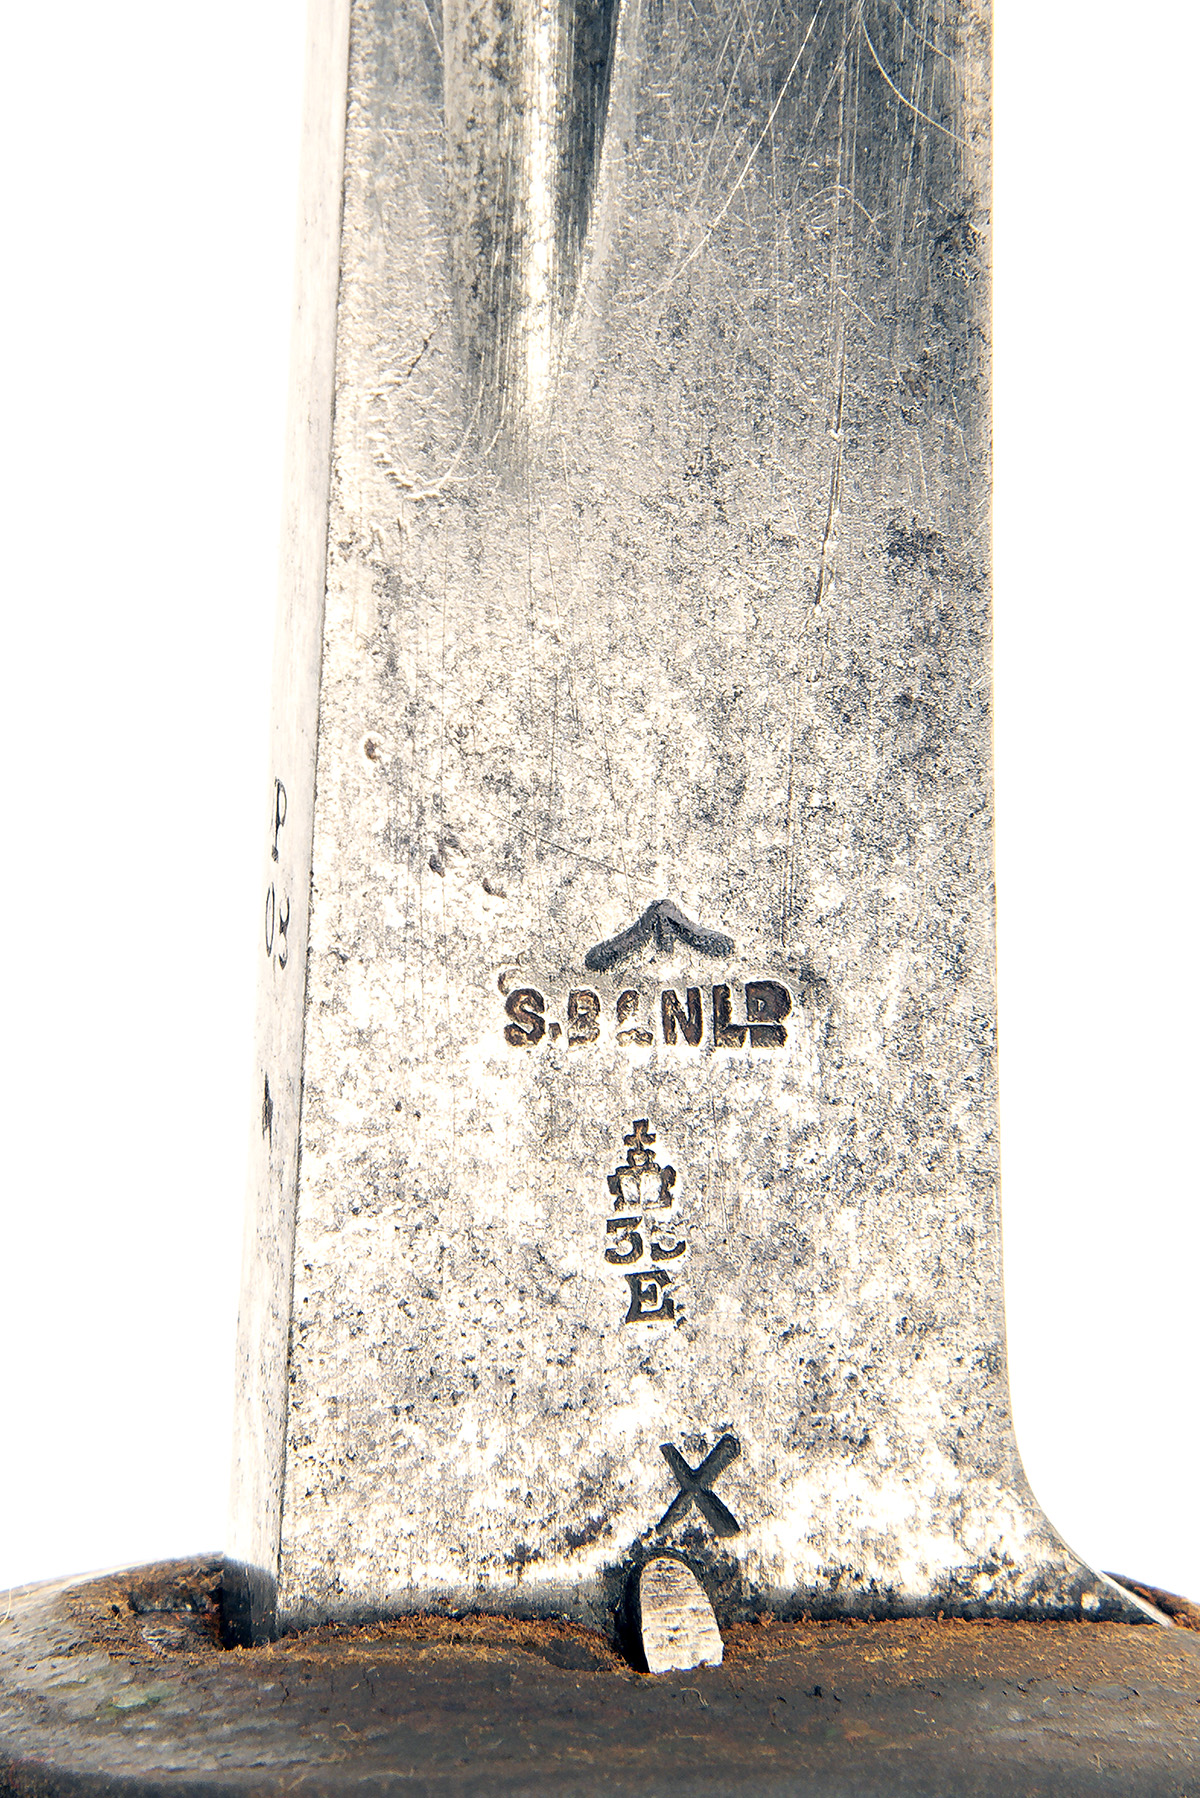 A BRITISH CAVALRY-TROOPER'S PATTERN '08 SWORD SIGNED 'S.B. & N. LTD', WITH SCARCE SADDLE-FROG, dated - Image 4 of 4